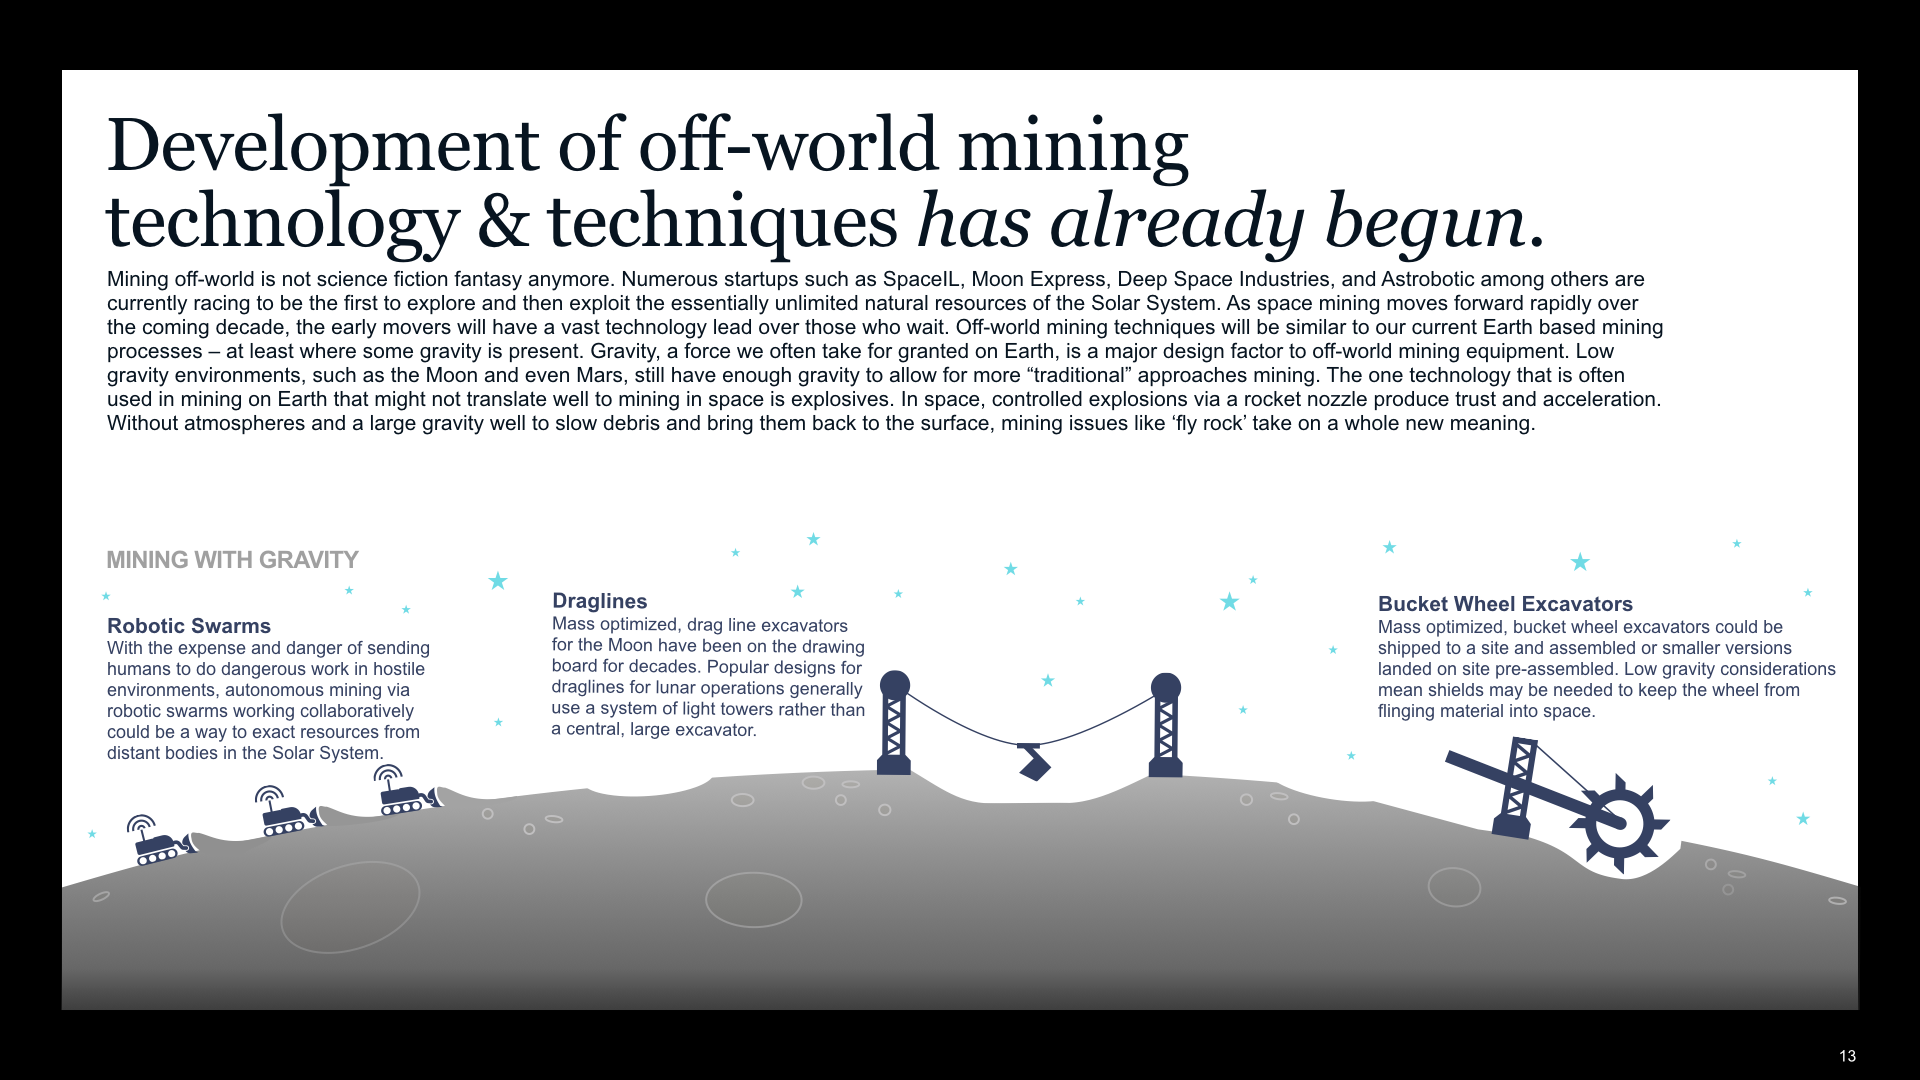 McKinsey_SpaceEconomy2019_MINING_overview_v019.013.png